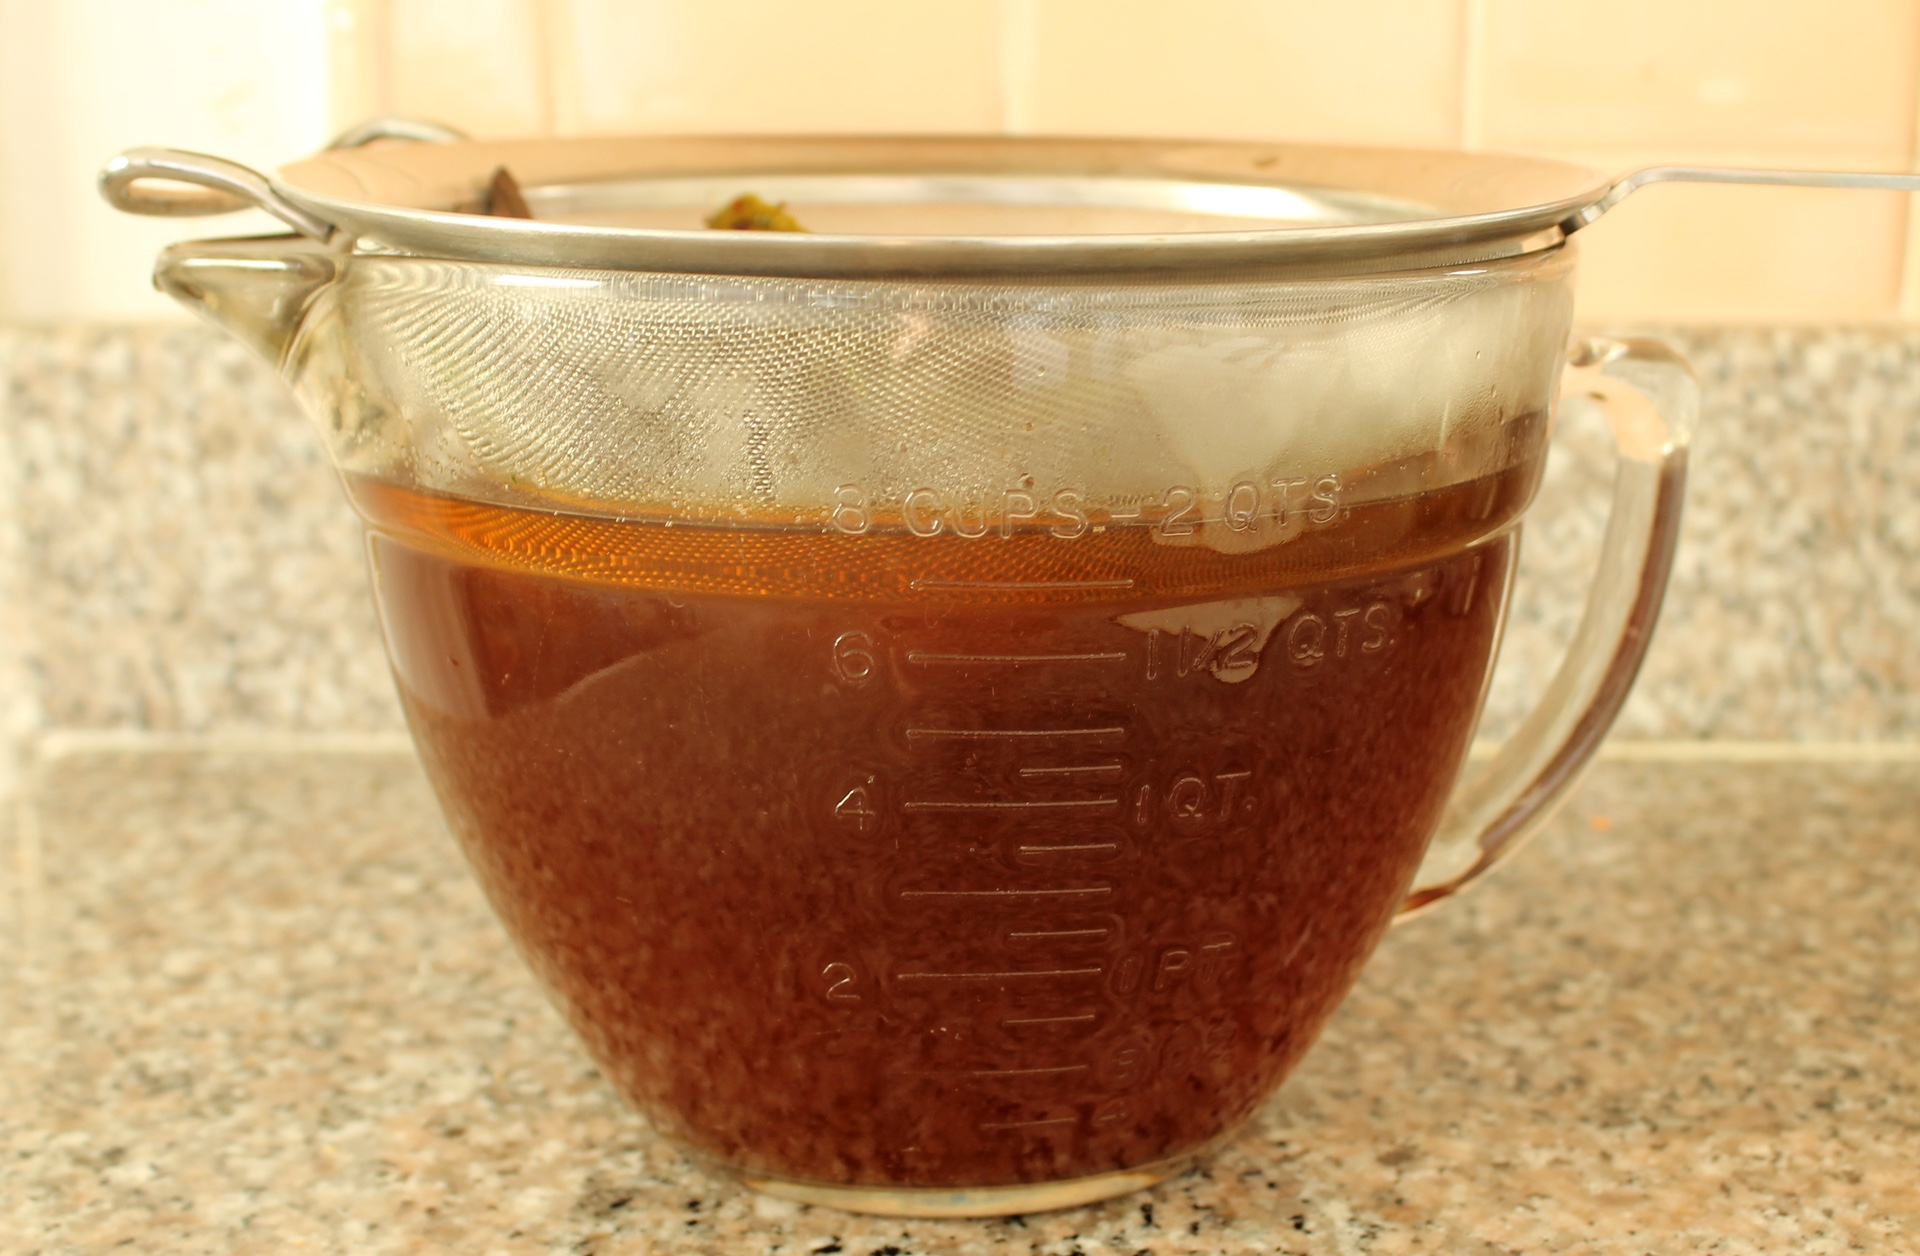 After two hours of steeping, the water is now deeply colored and aromatic.